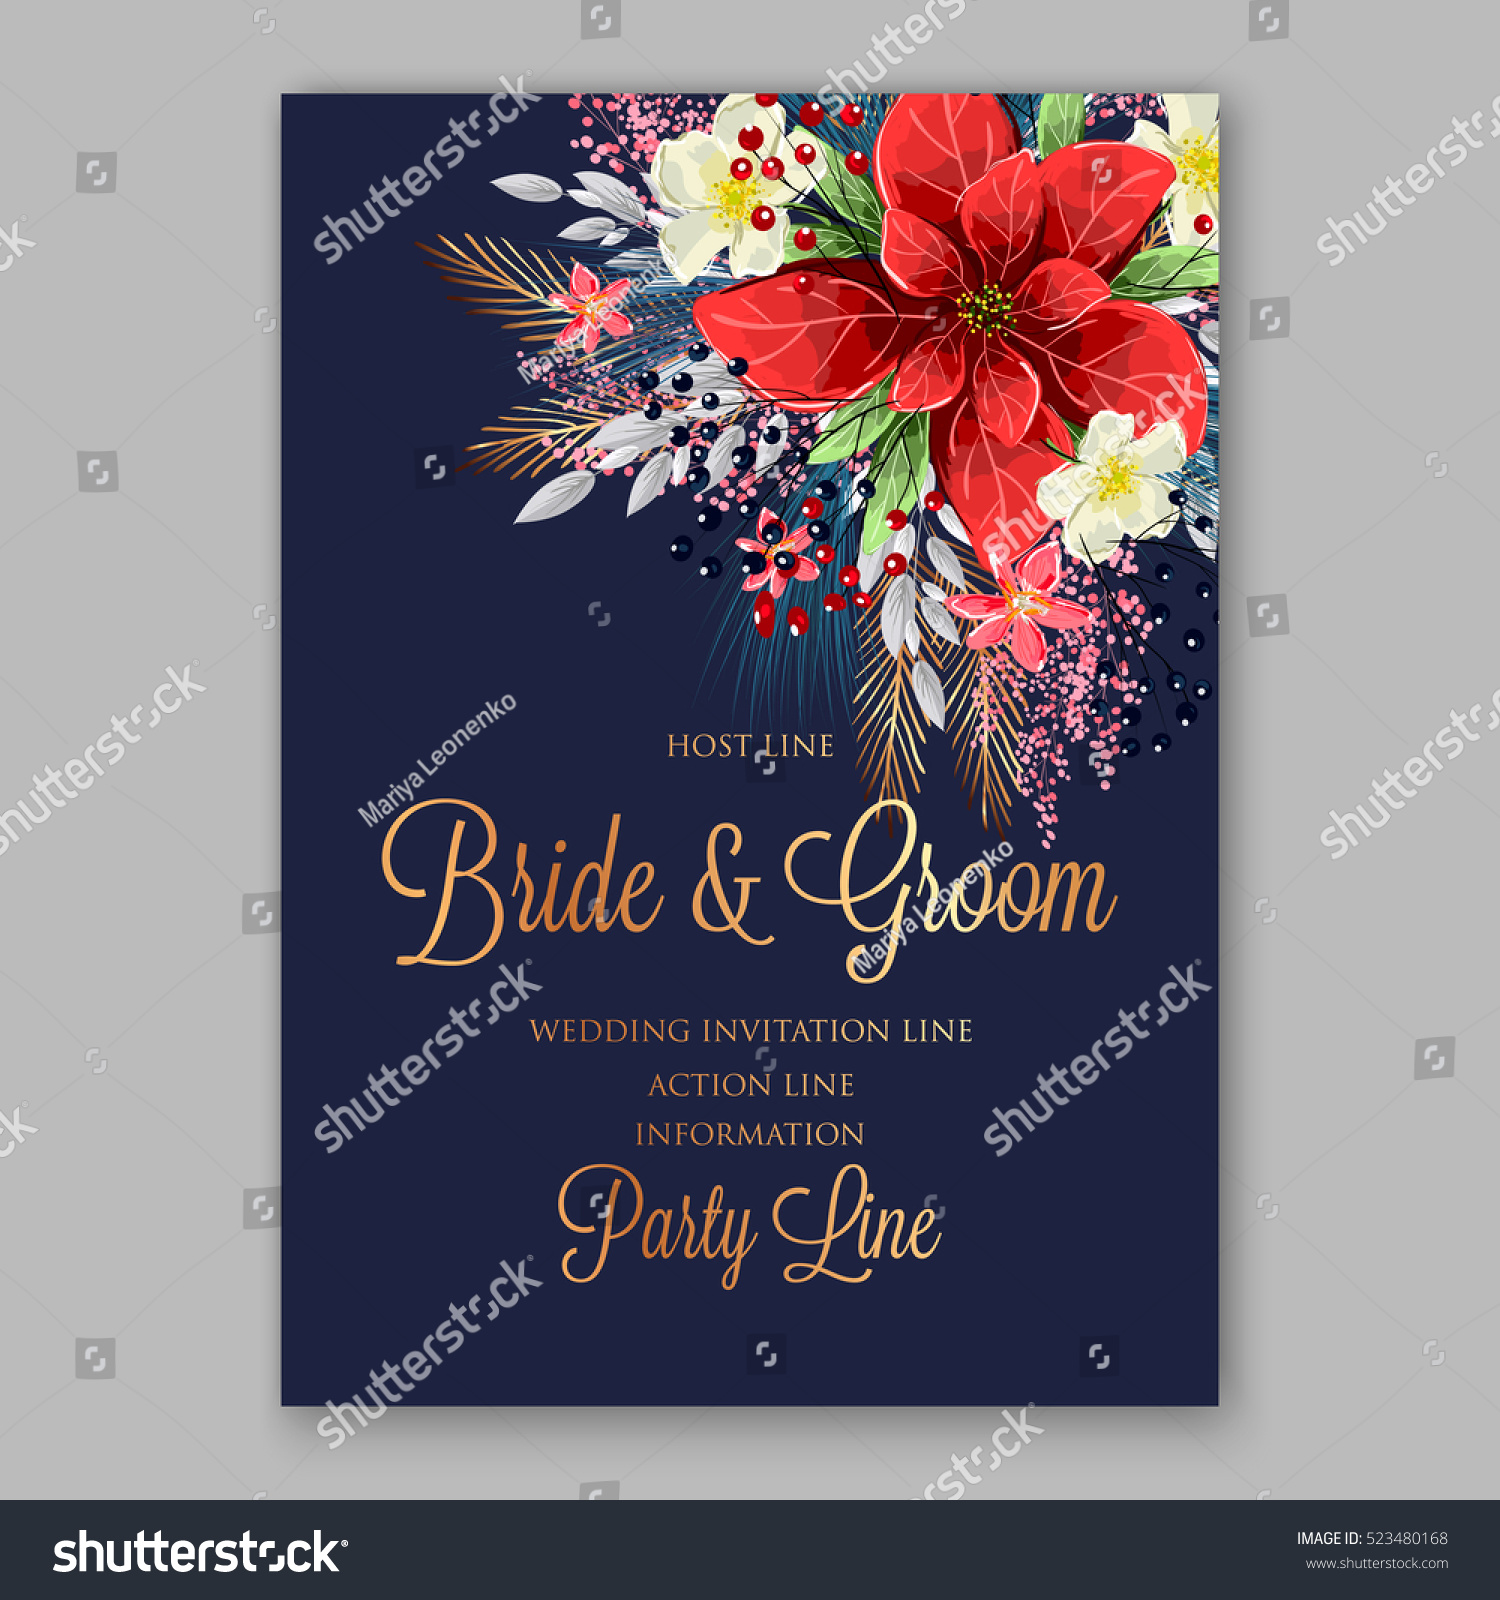 Red poinsettia wedding invitation sample card stock vector 2018 red poinsettia wedding invitation sample card beautiful winter floral ornament with gold wording stopboris Image collections